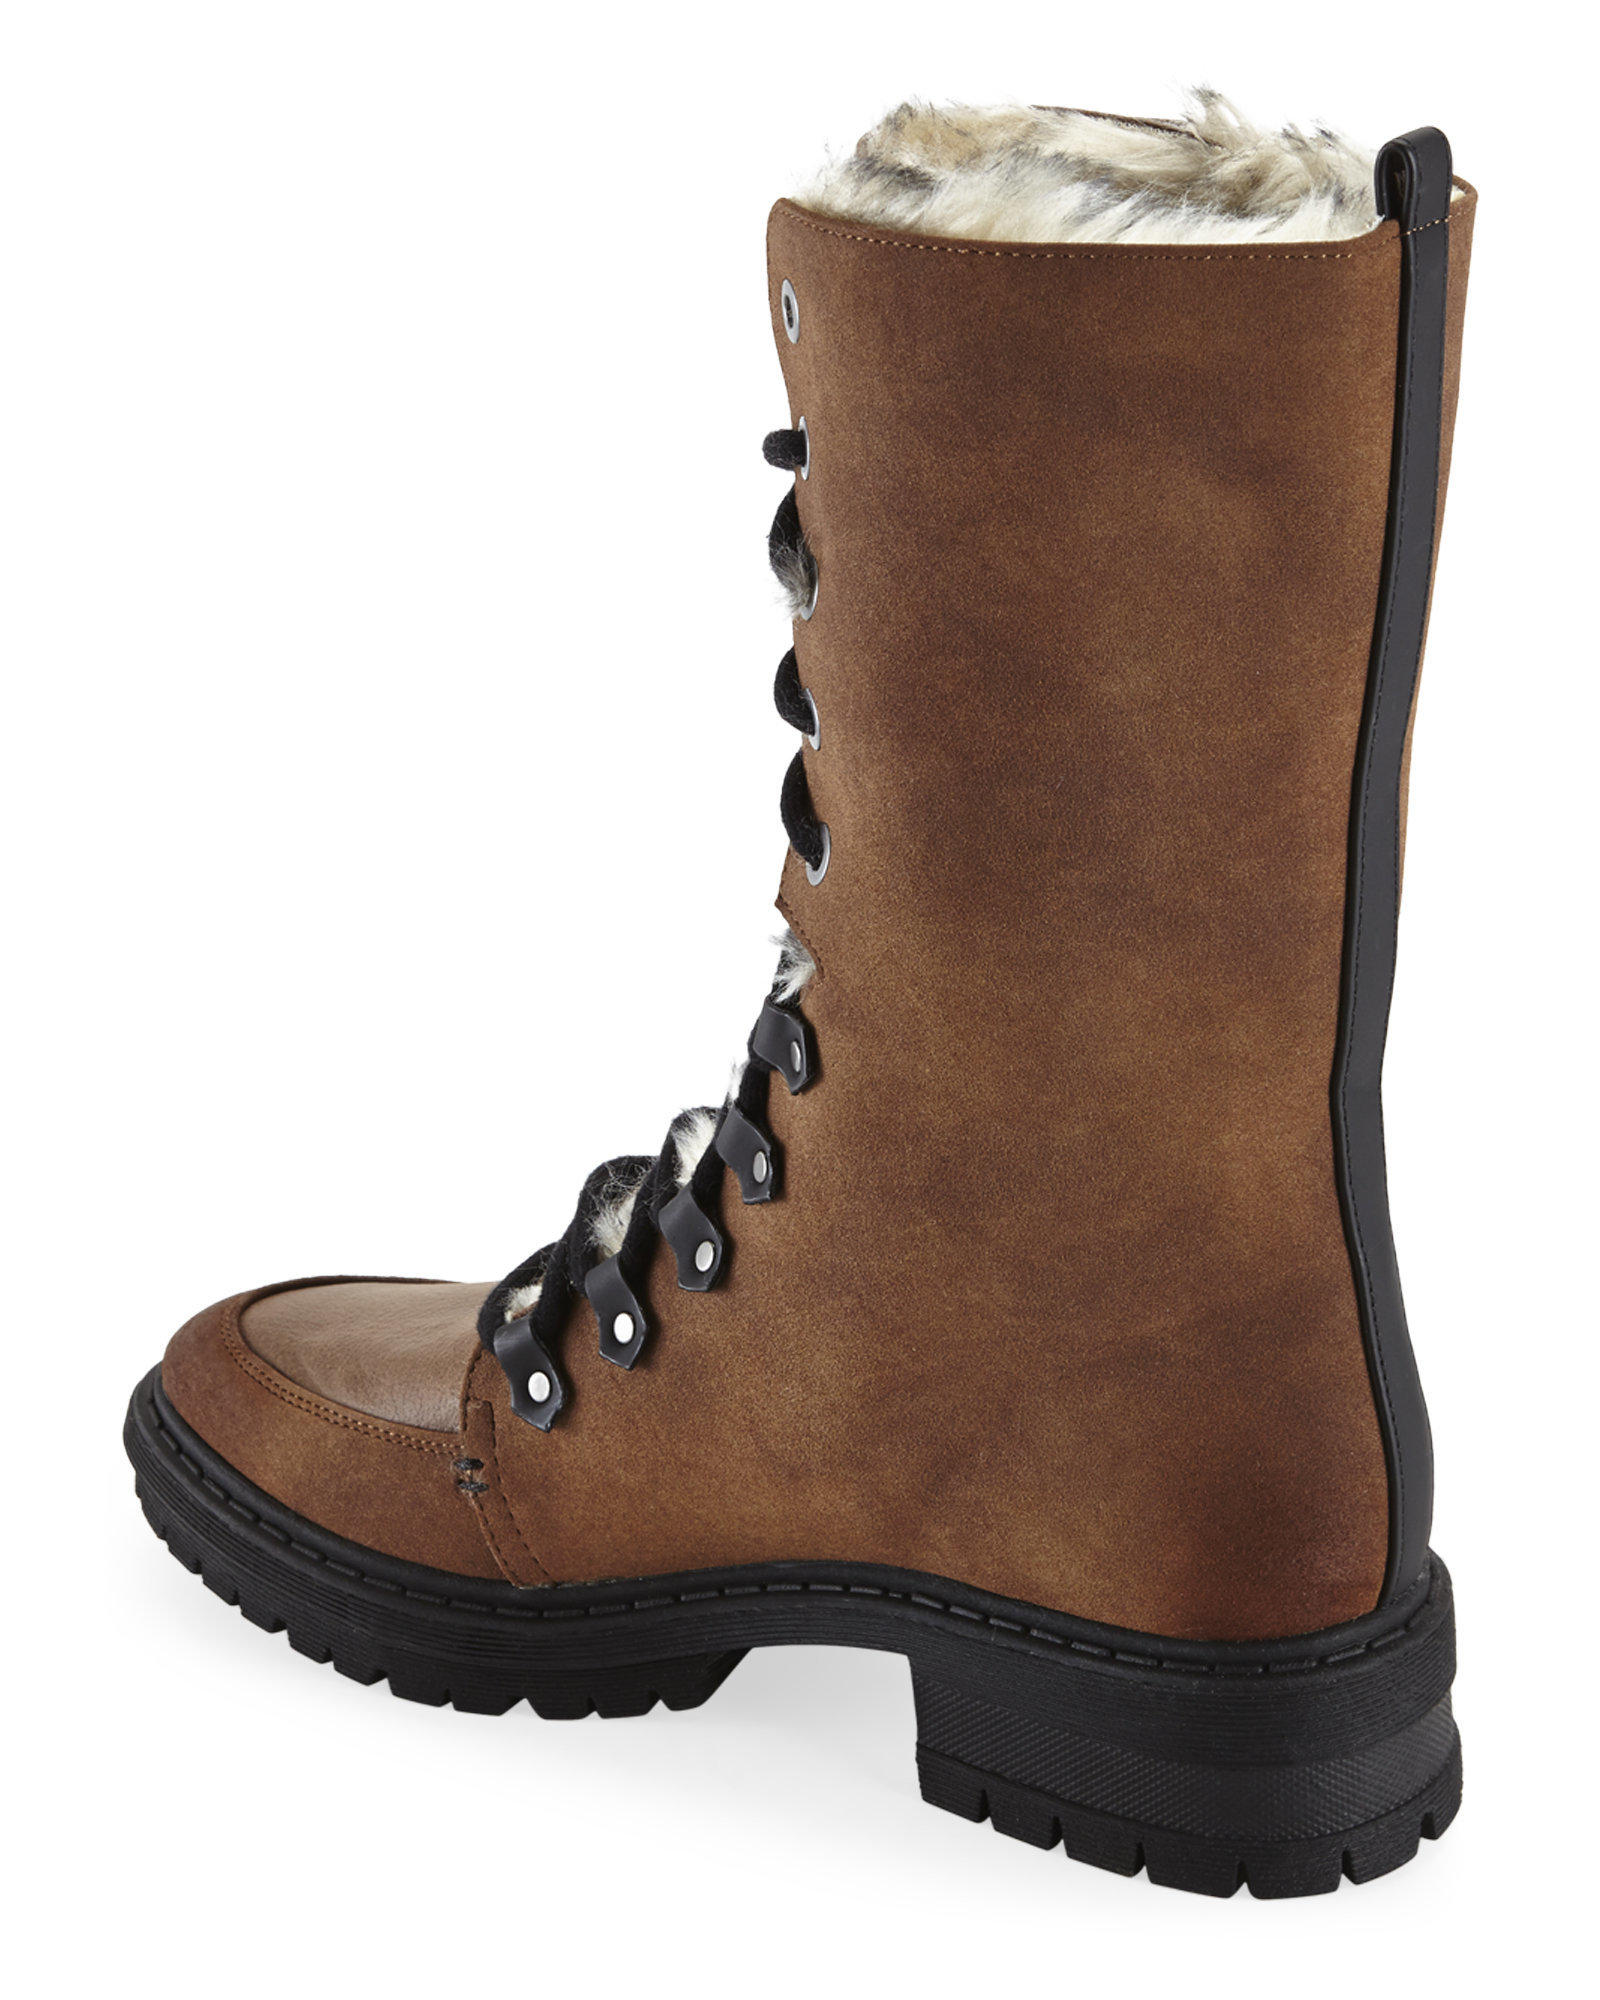 4a8496083529 Lyst - Circus by Sam Edelman Saddle Liam Faux Fur-Lined Lace Boots